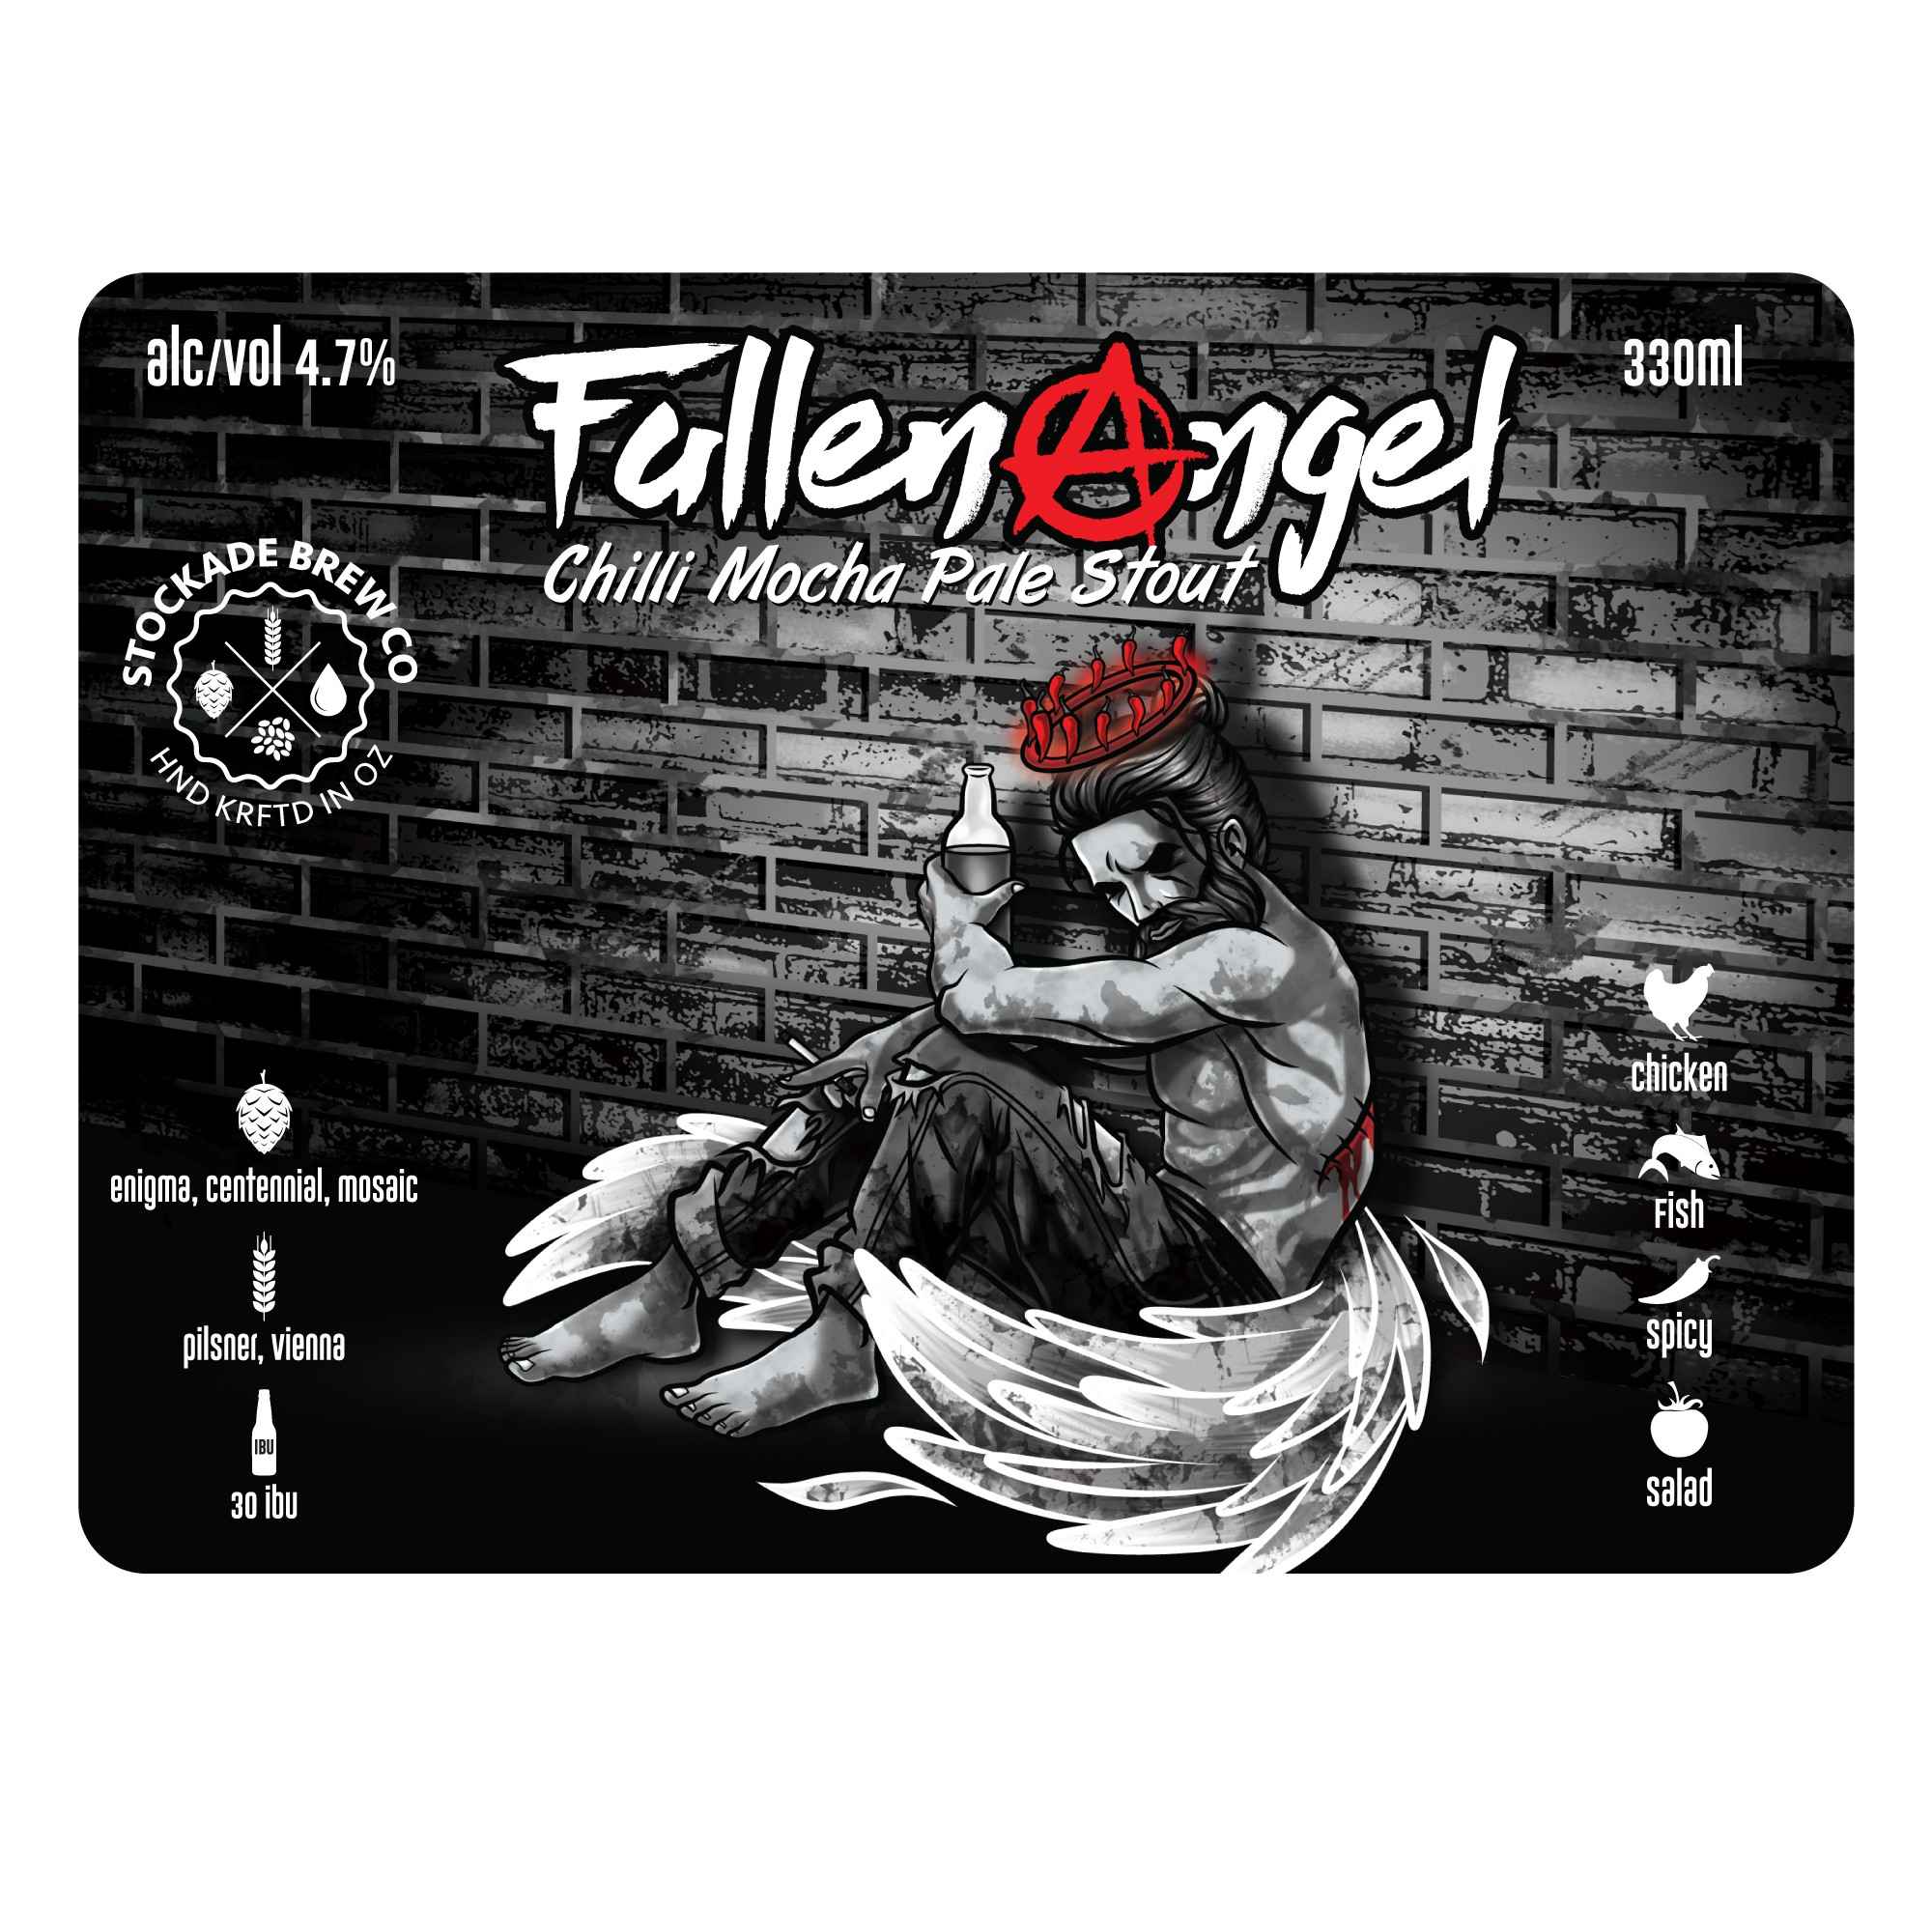 Create a beer label for our latest brew!